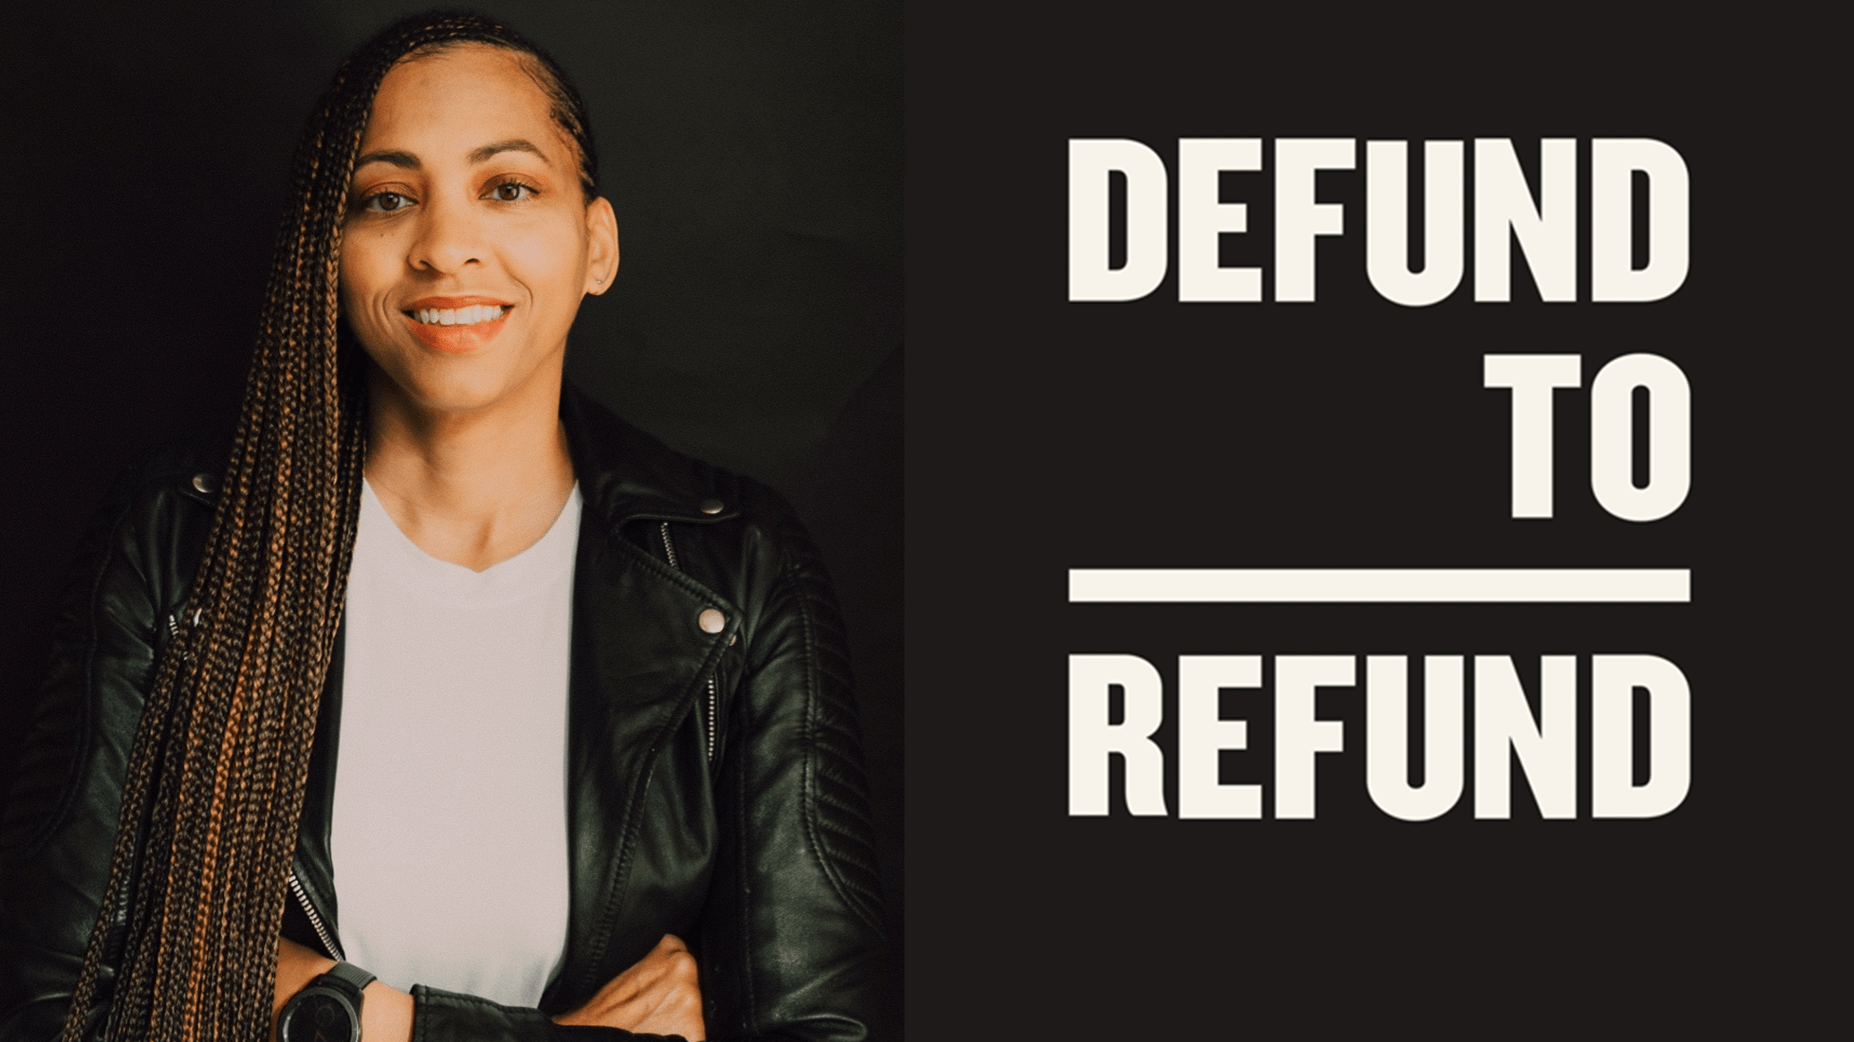 The Defund To Refund Project Is Resetting The Conversation Around Police Reform